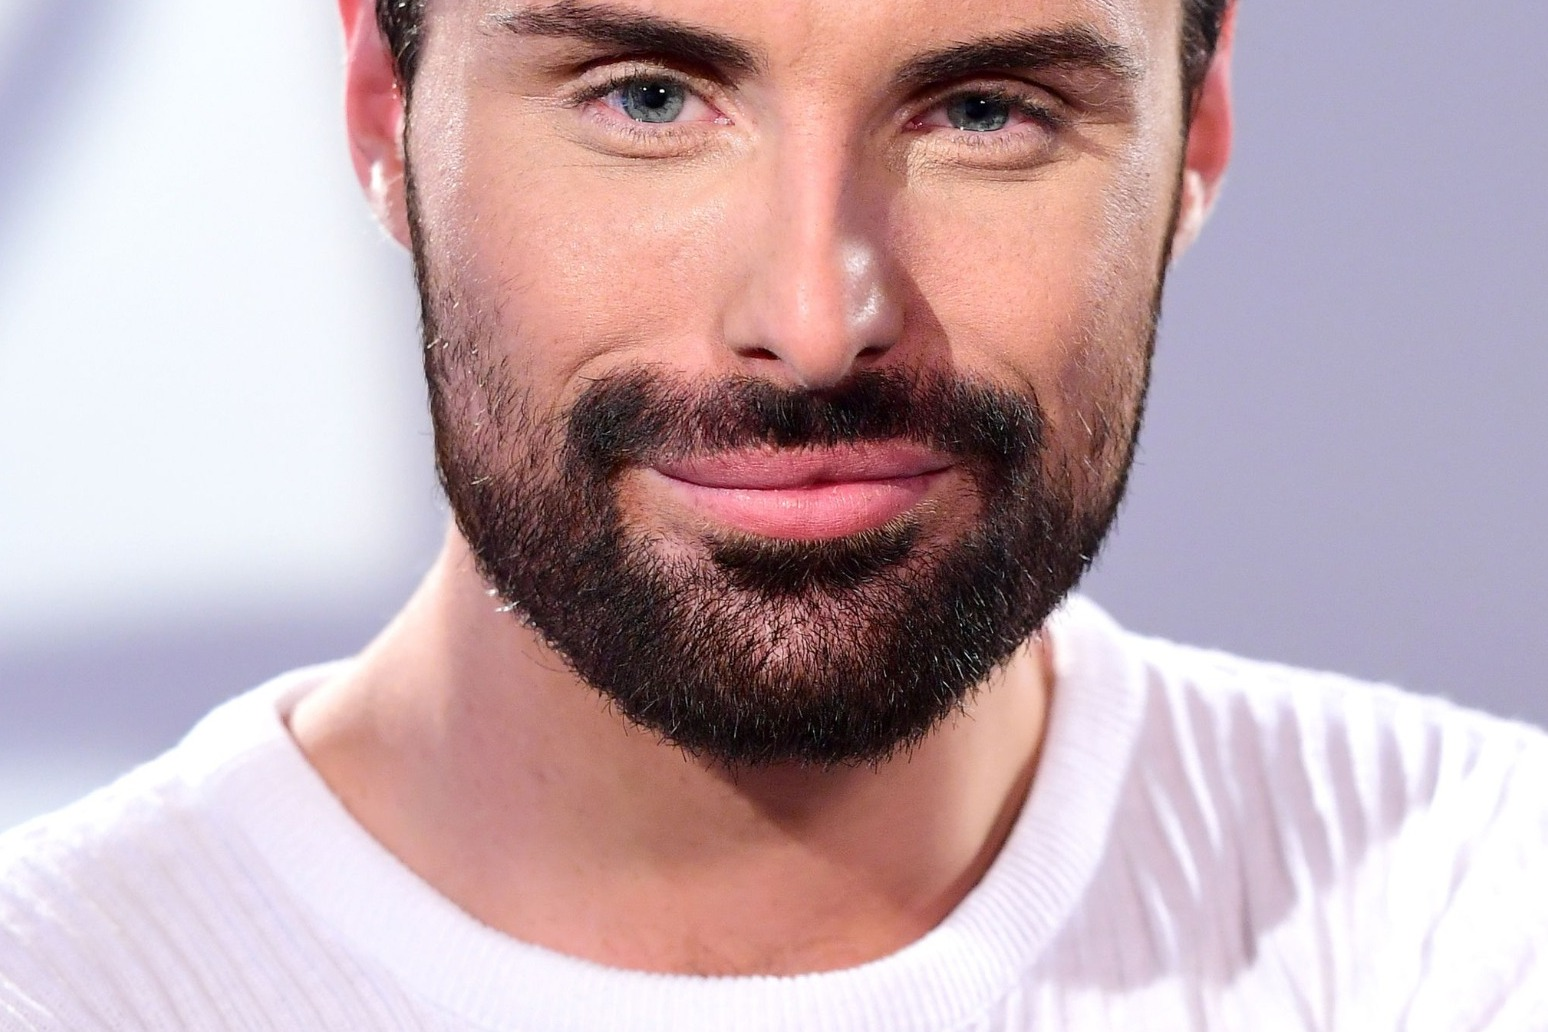 RYLAN CLARK-NEAL DEFENDS POLITICAL TWITTER POSTS AFTER \'SNOBBY\' COMMENTS